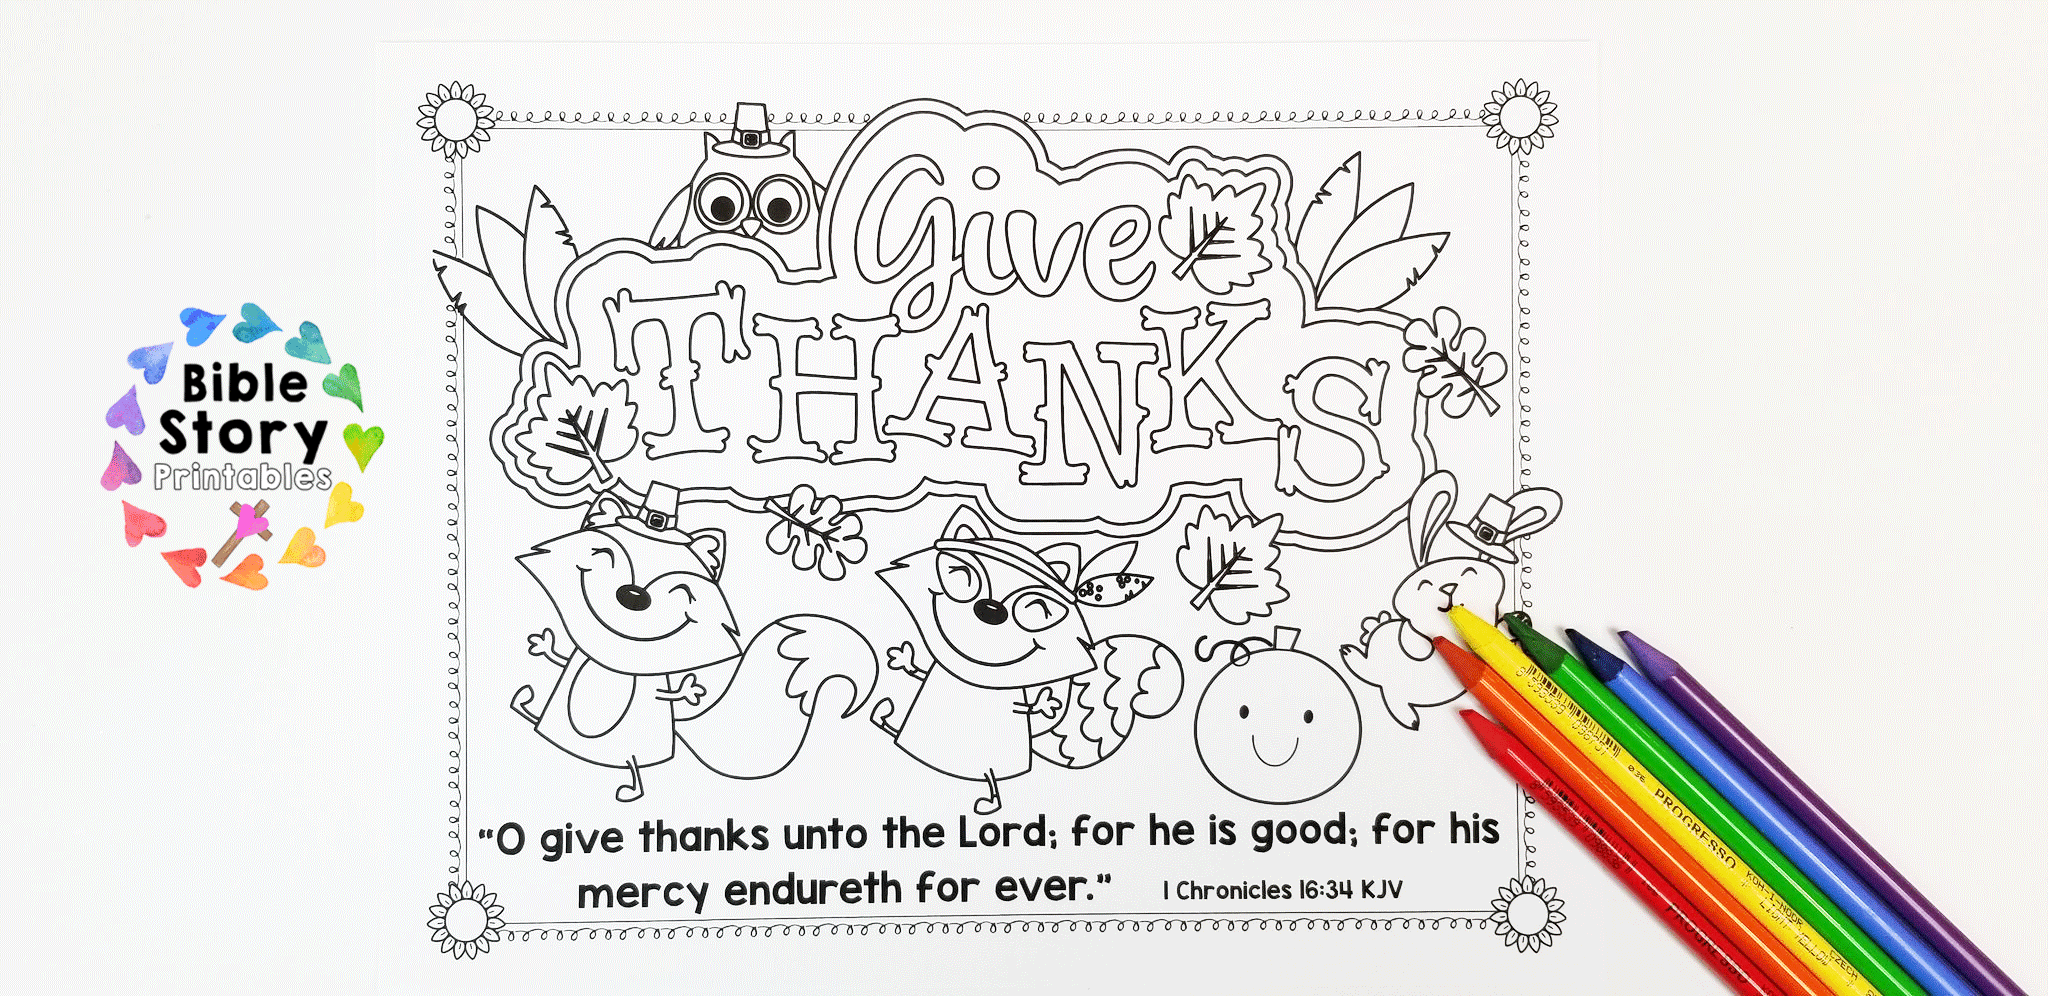 photo about Printable Thanksgiving Placemat titled Printable Thanksgiving Placemat with Bible Verse - The